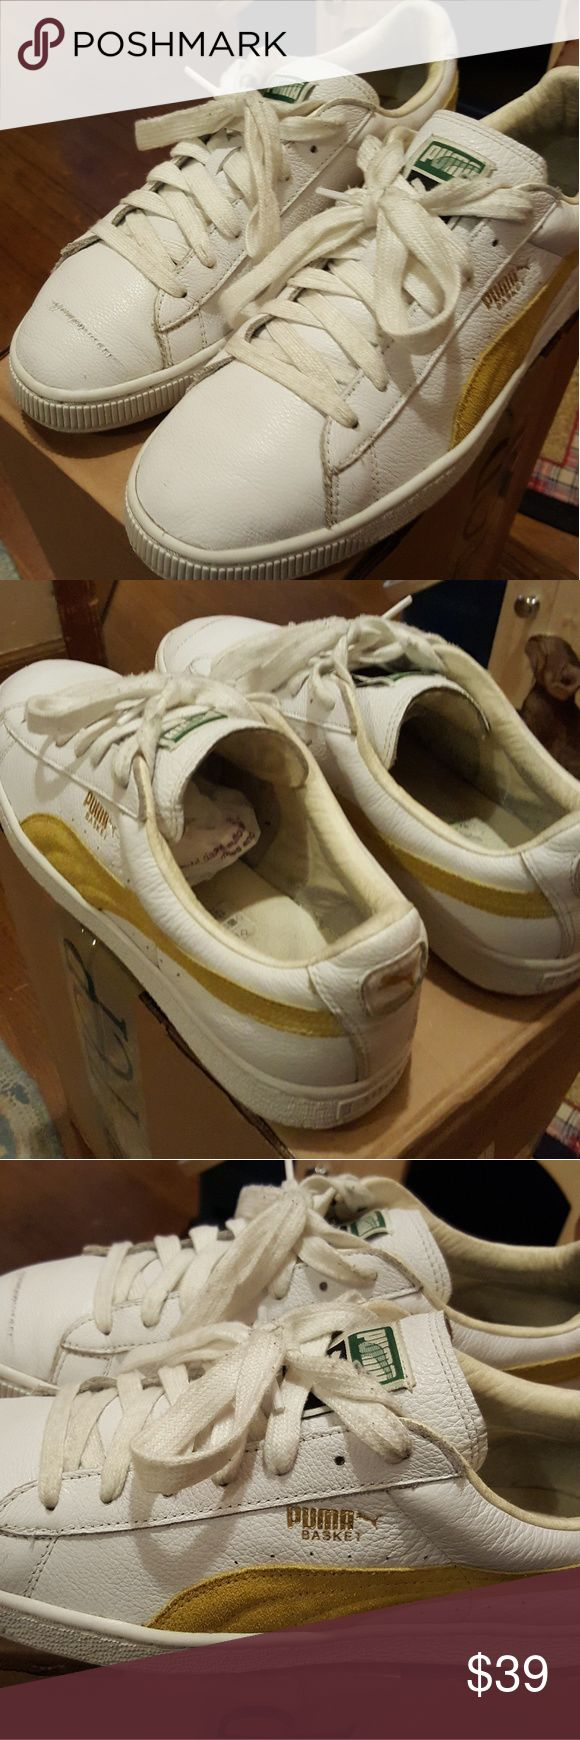 Clyde Pumas White/Yellow used Clyde Pumas Scratch on right sneaker...Can be covered by white shoe polish Puma Shoes Sneakers